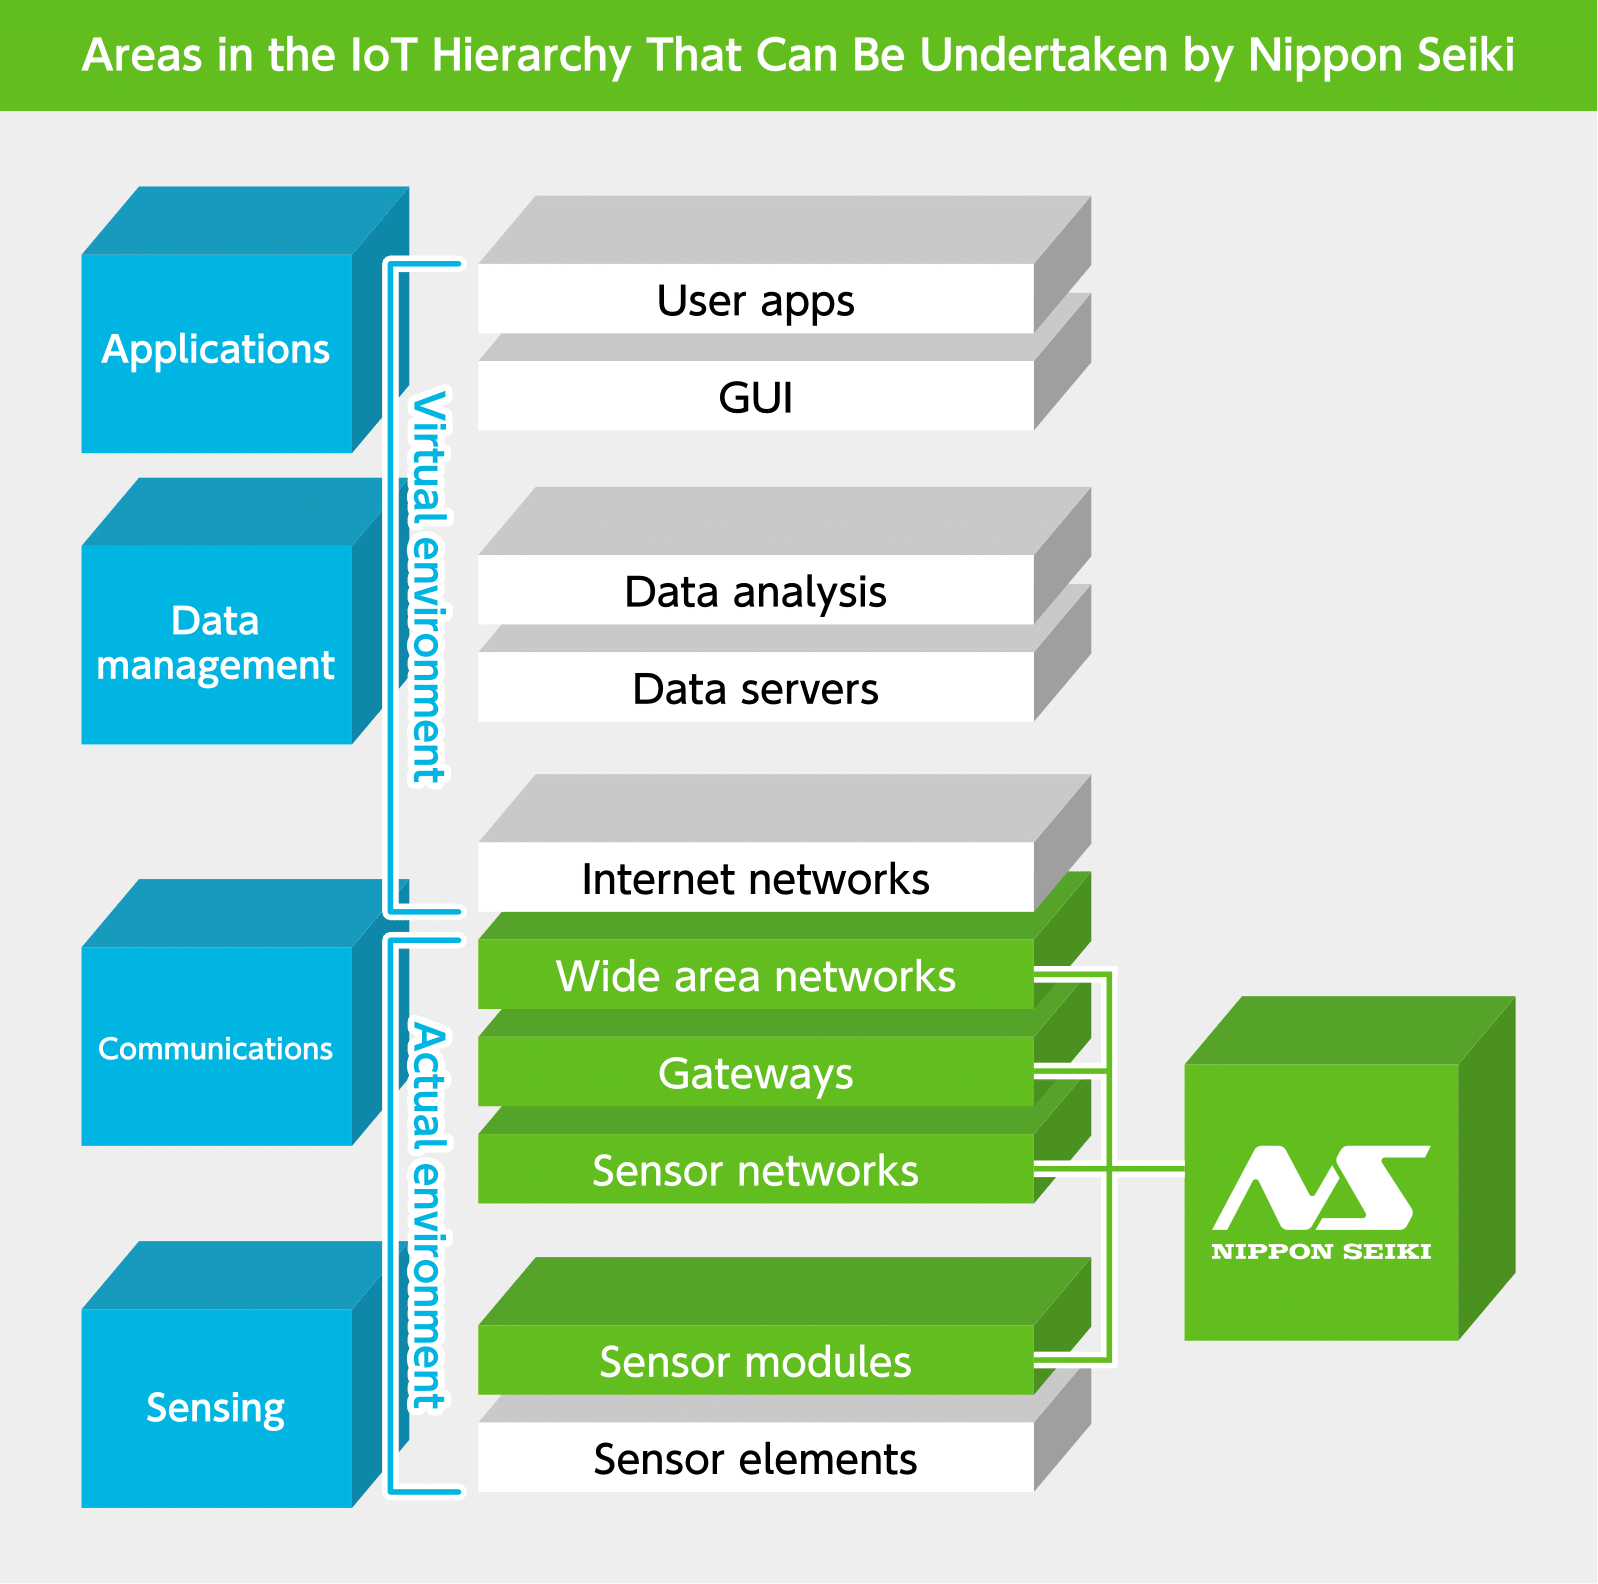 Areas in the IoT Hierarchy That Can Be Undertaken by Nippon Seiki